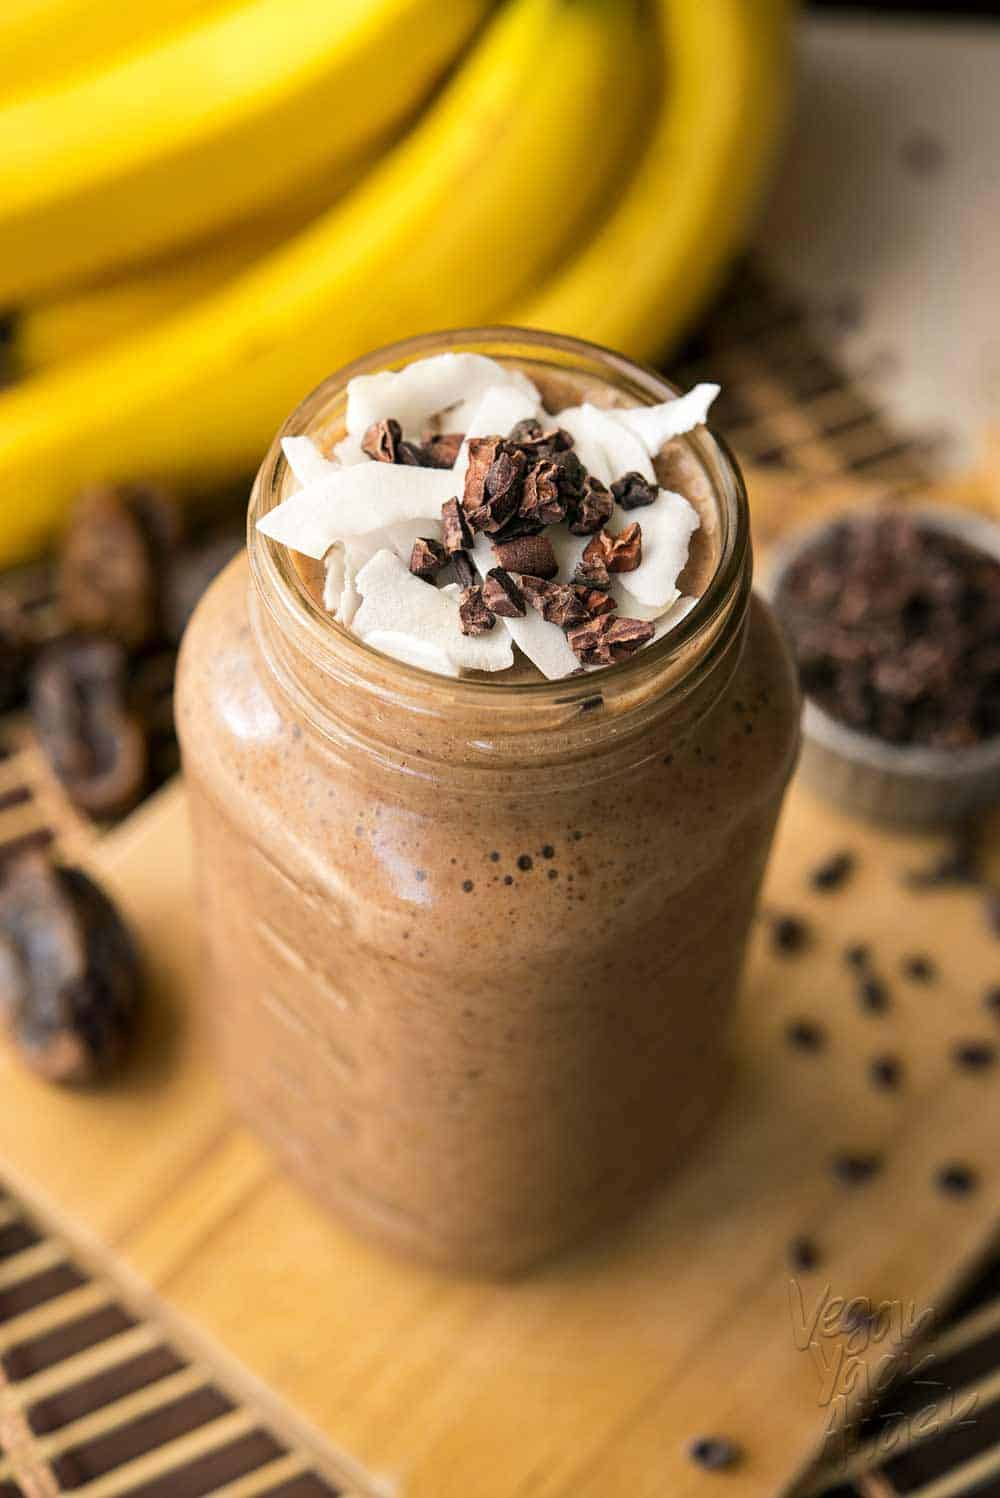 Large jar filled with banana cacao recovery smoothie, on a bread board surrounded by ingredients